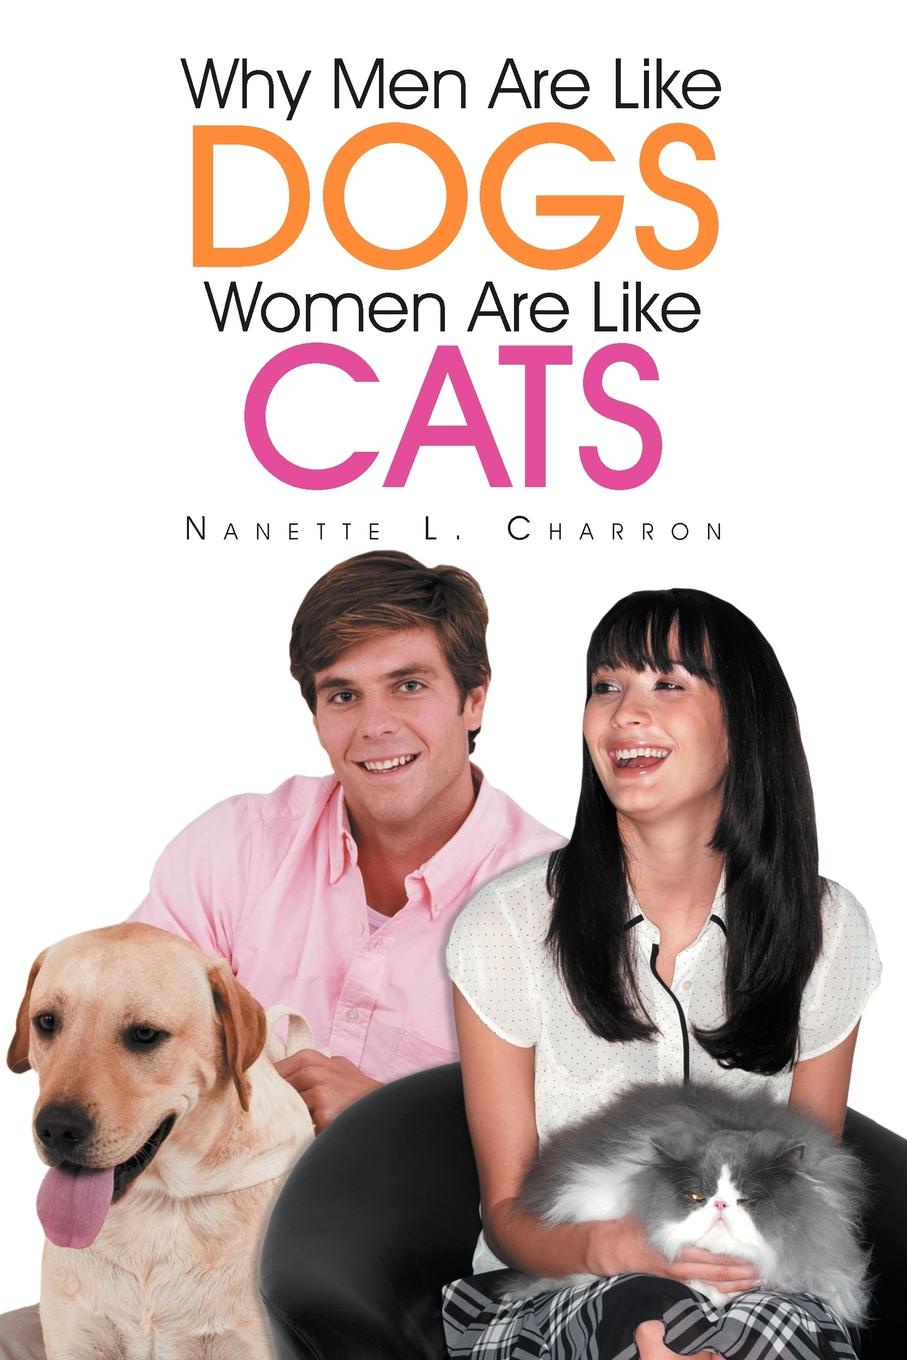 Nanette L. Charron Why Men Are Like Dogs and Women Cats